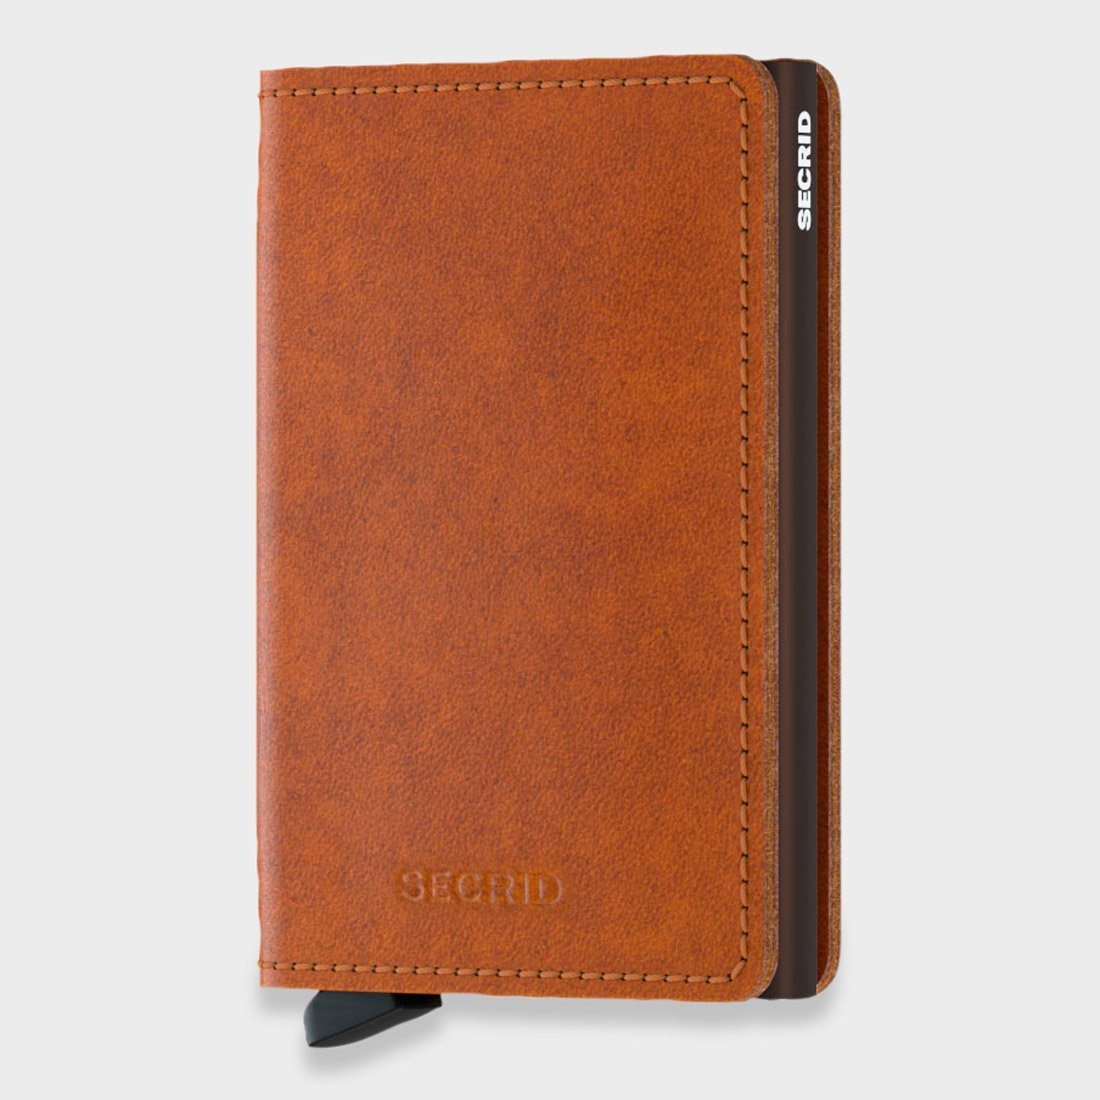 Secrid Original Slimwallet Cognac Brown